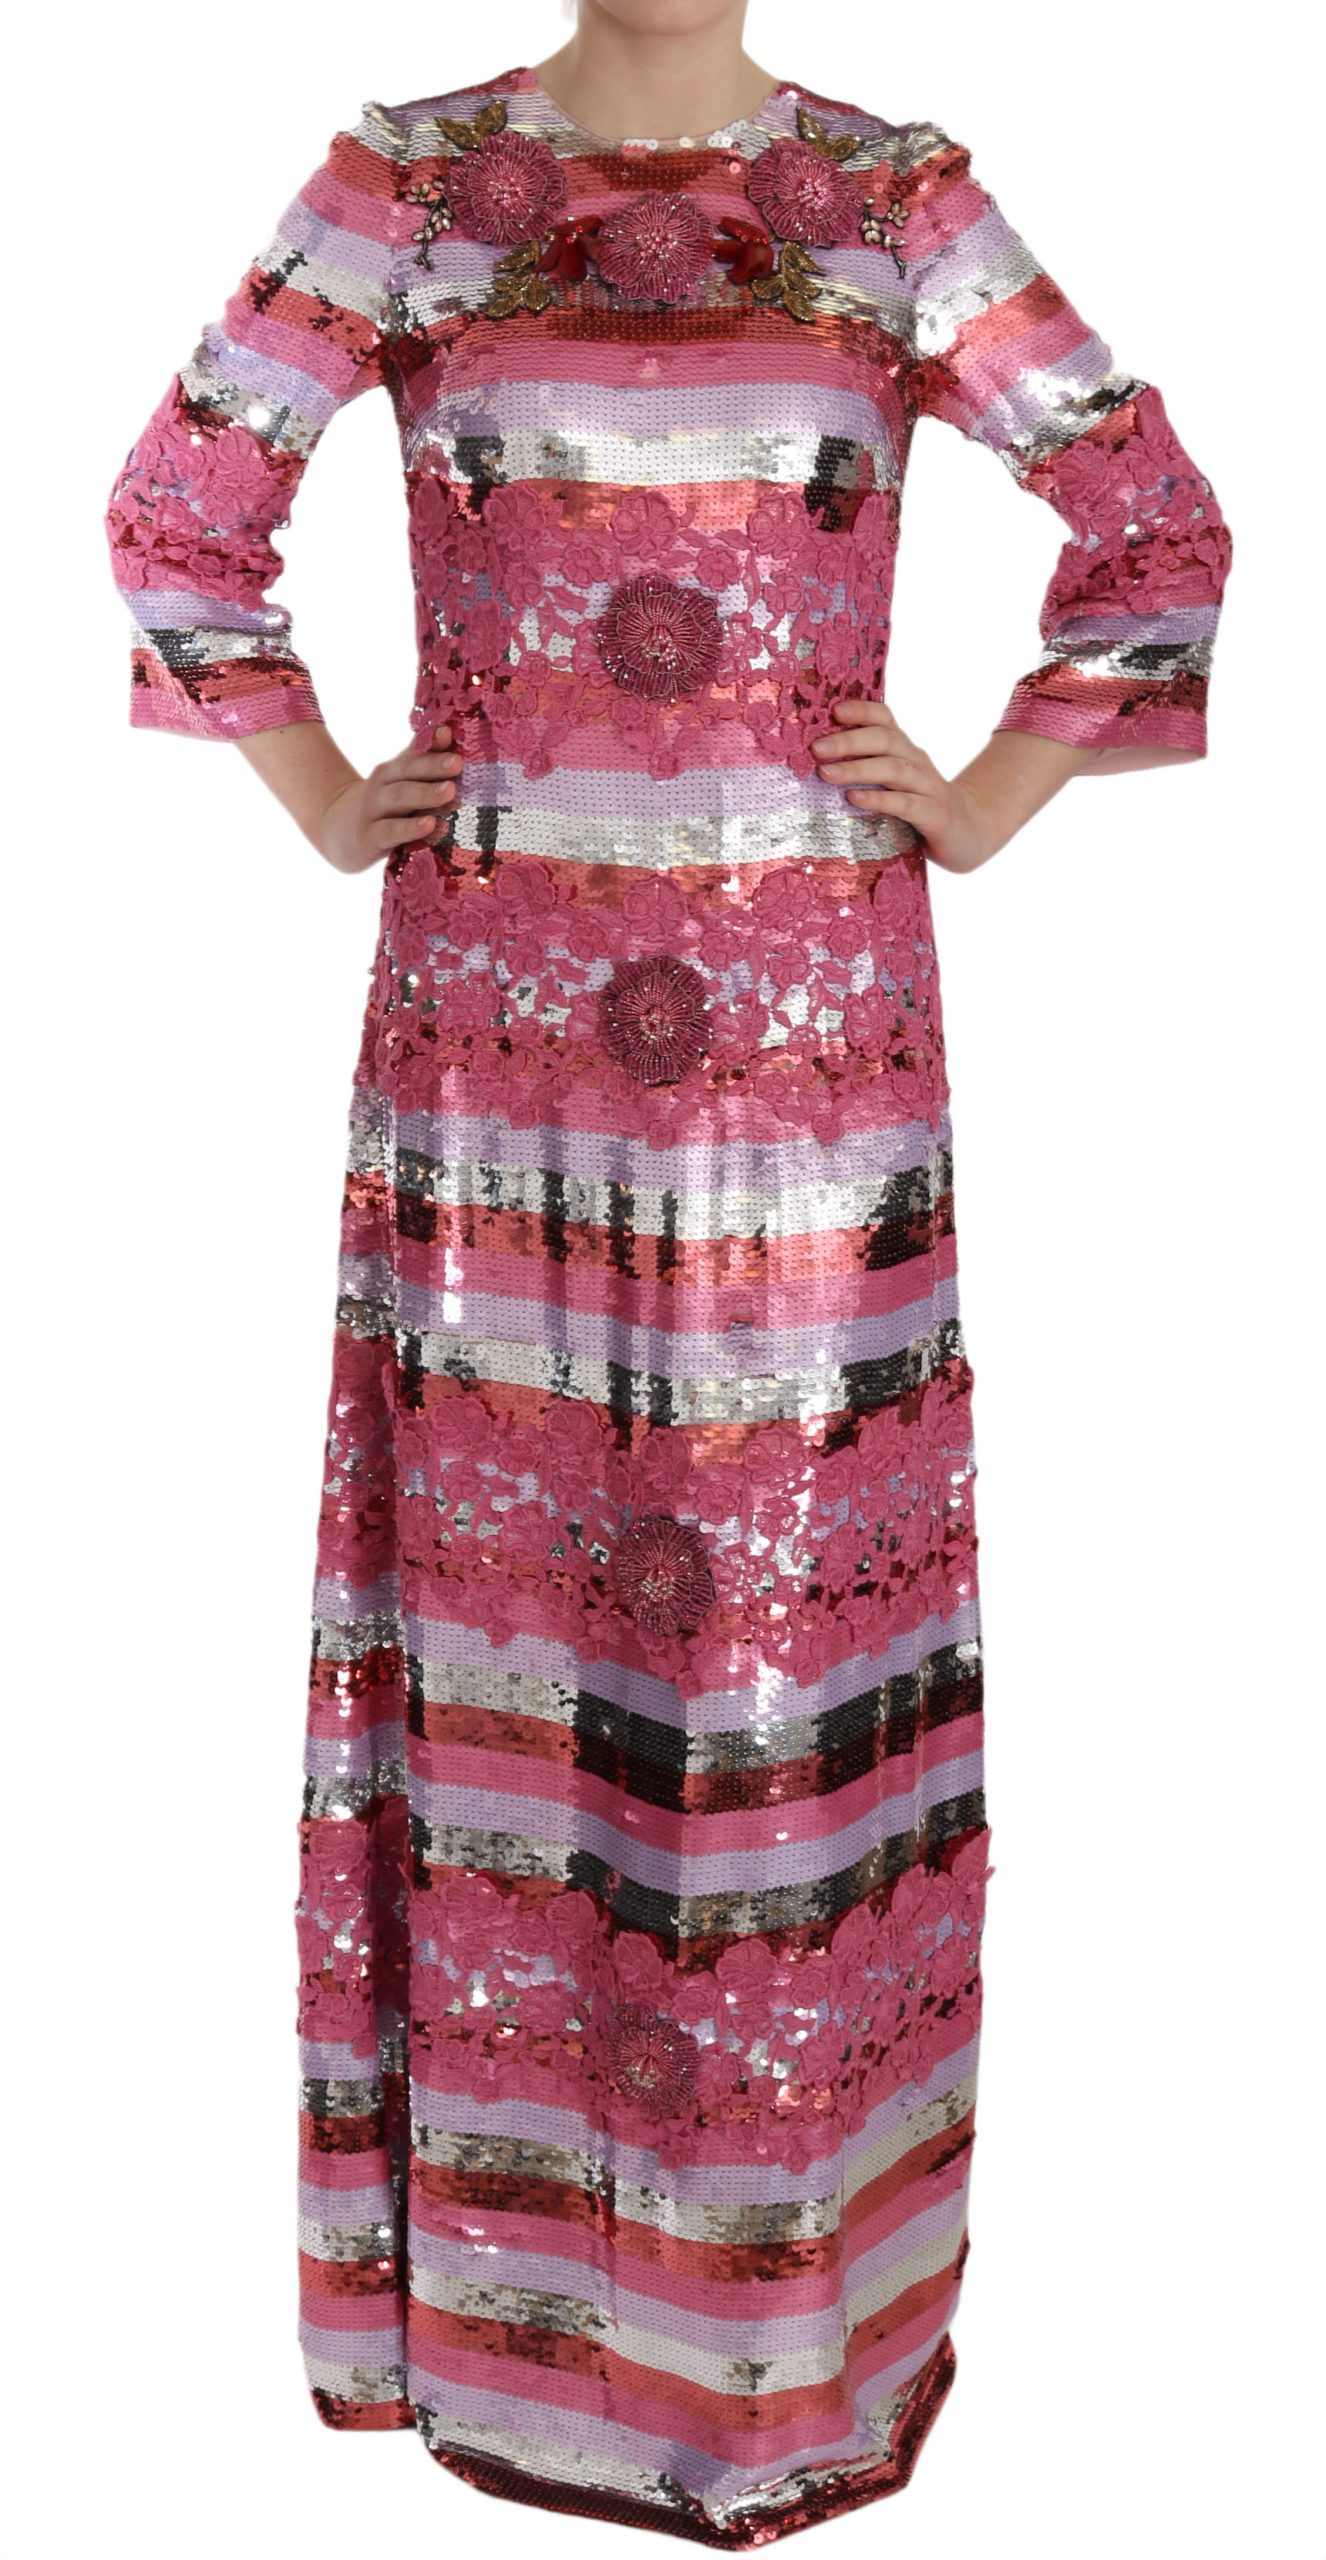 Dolce & Gabbana Women's Floral Sequined Crystal Gown Dress Pink DR1679 - IT44|L